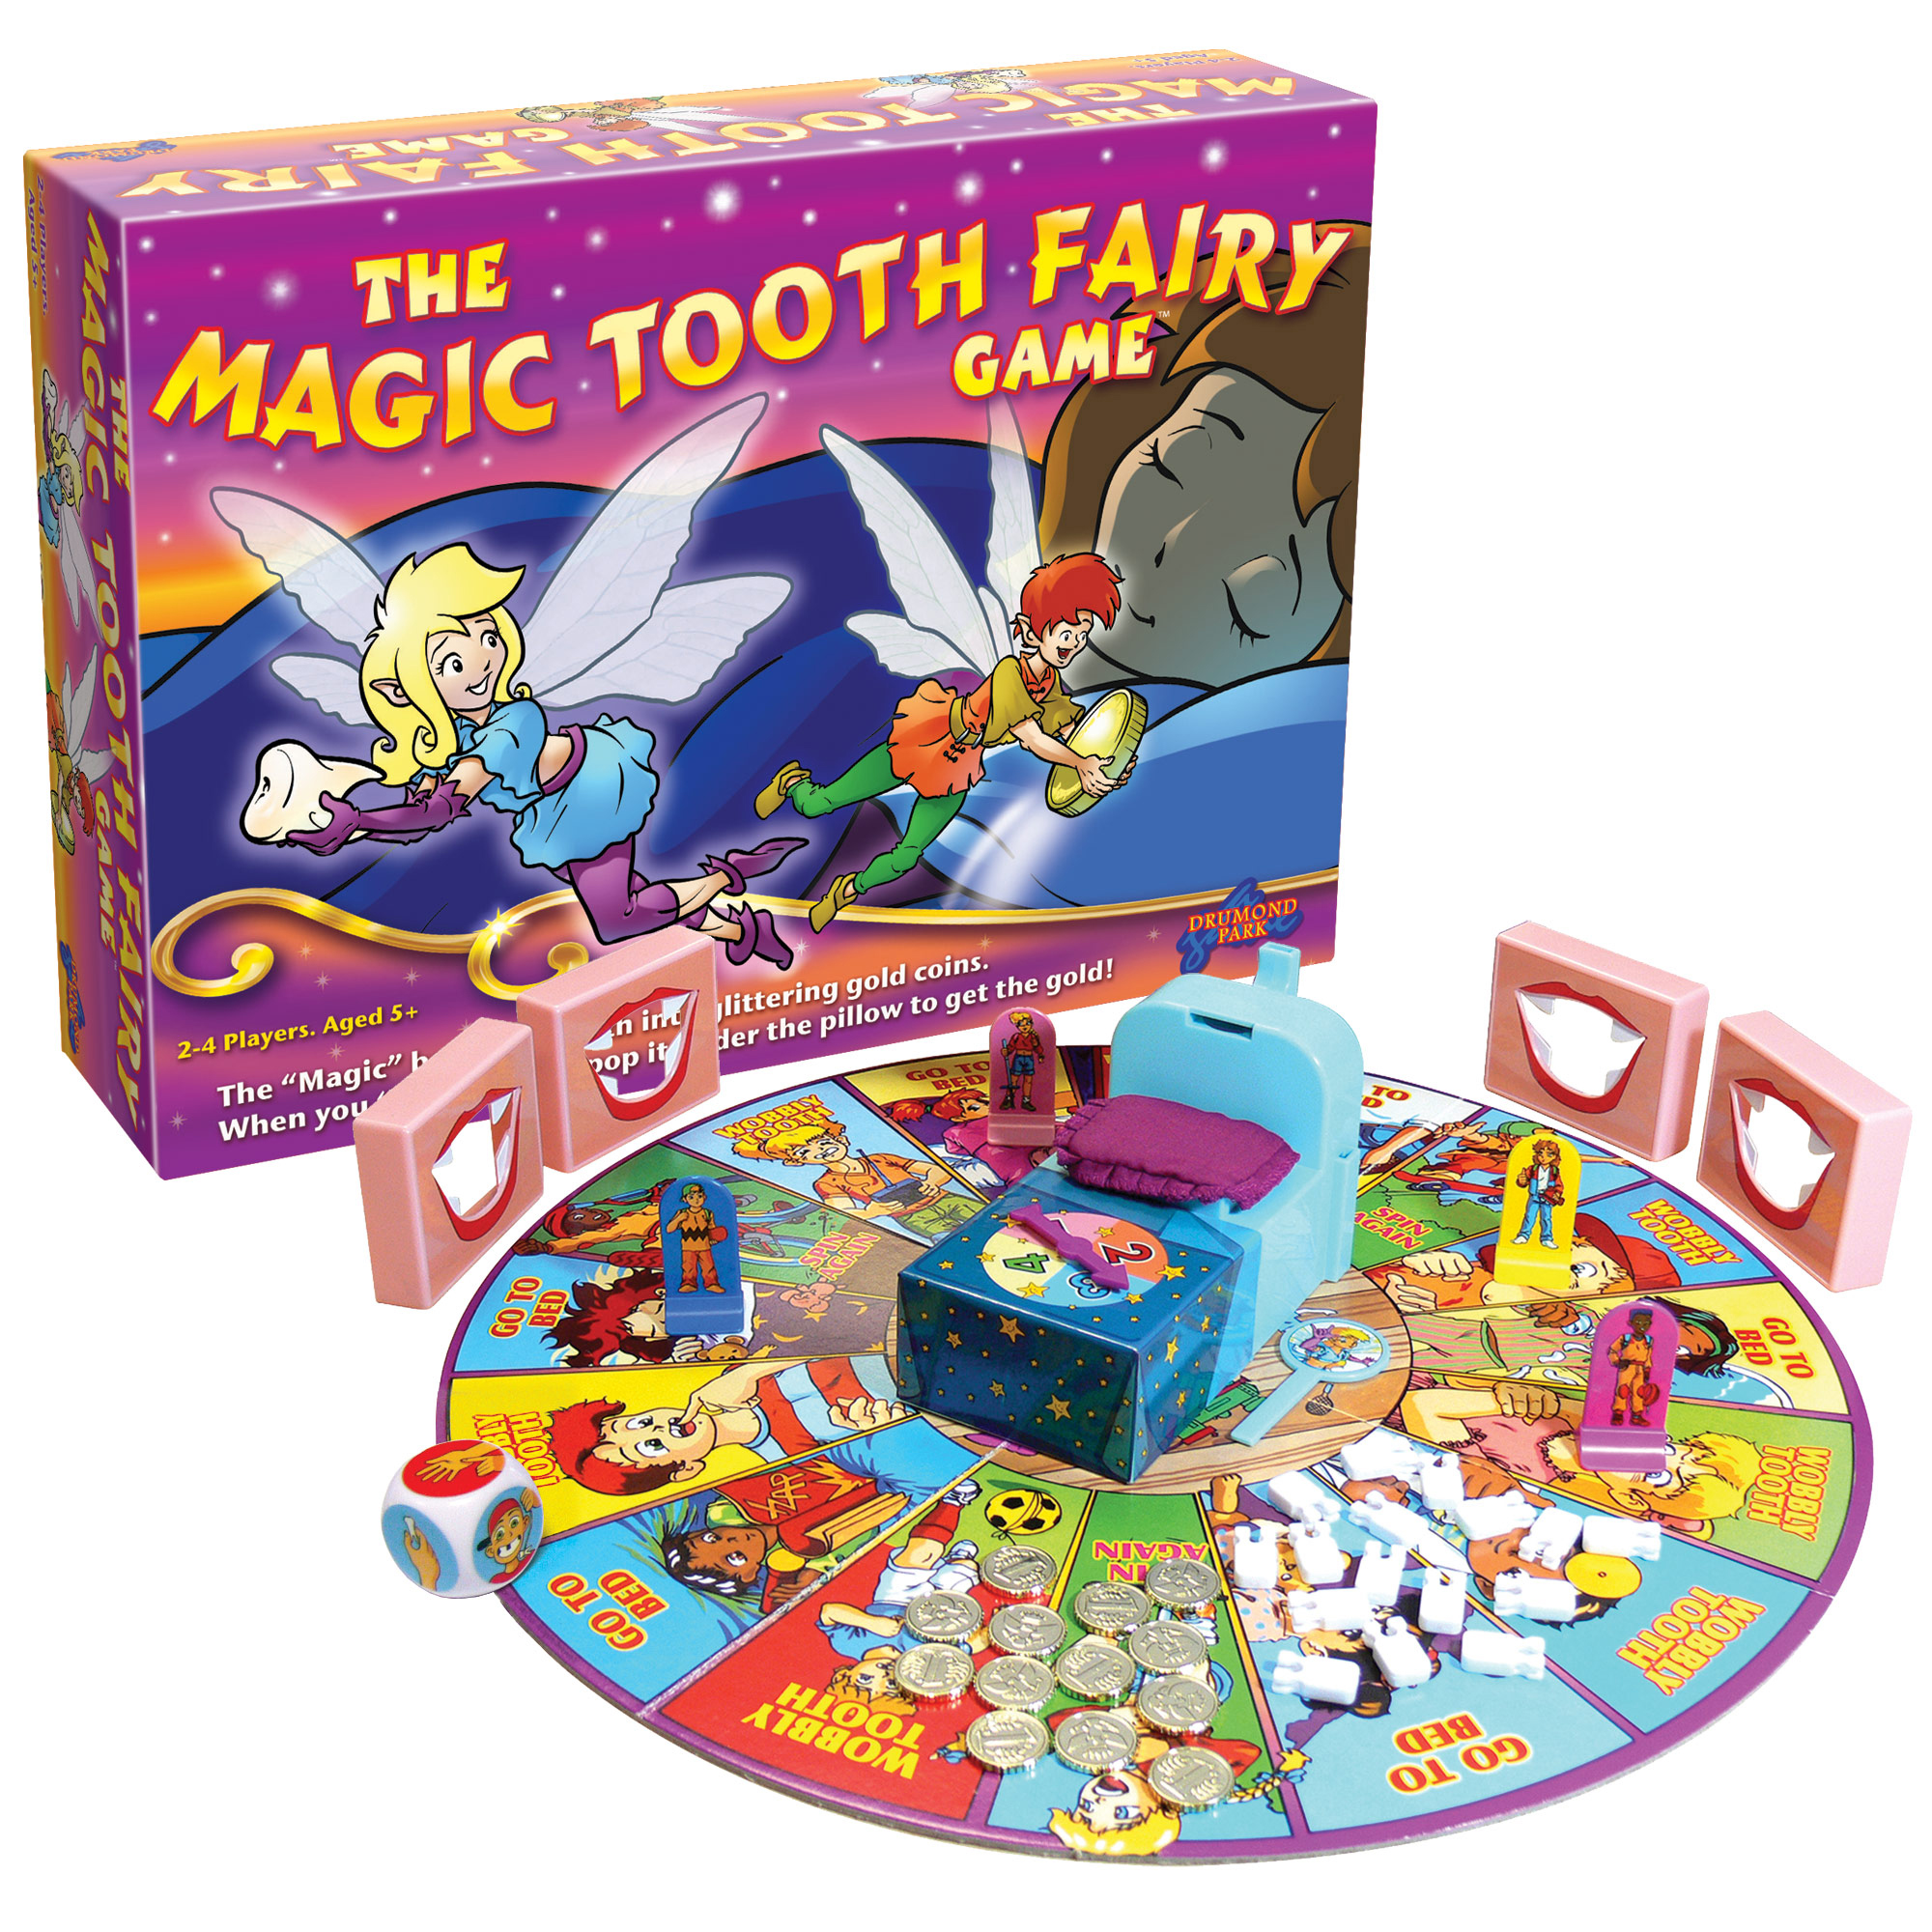 Image of The Magic Tooth Fairy Game